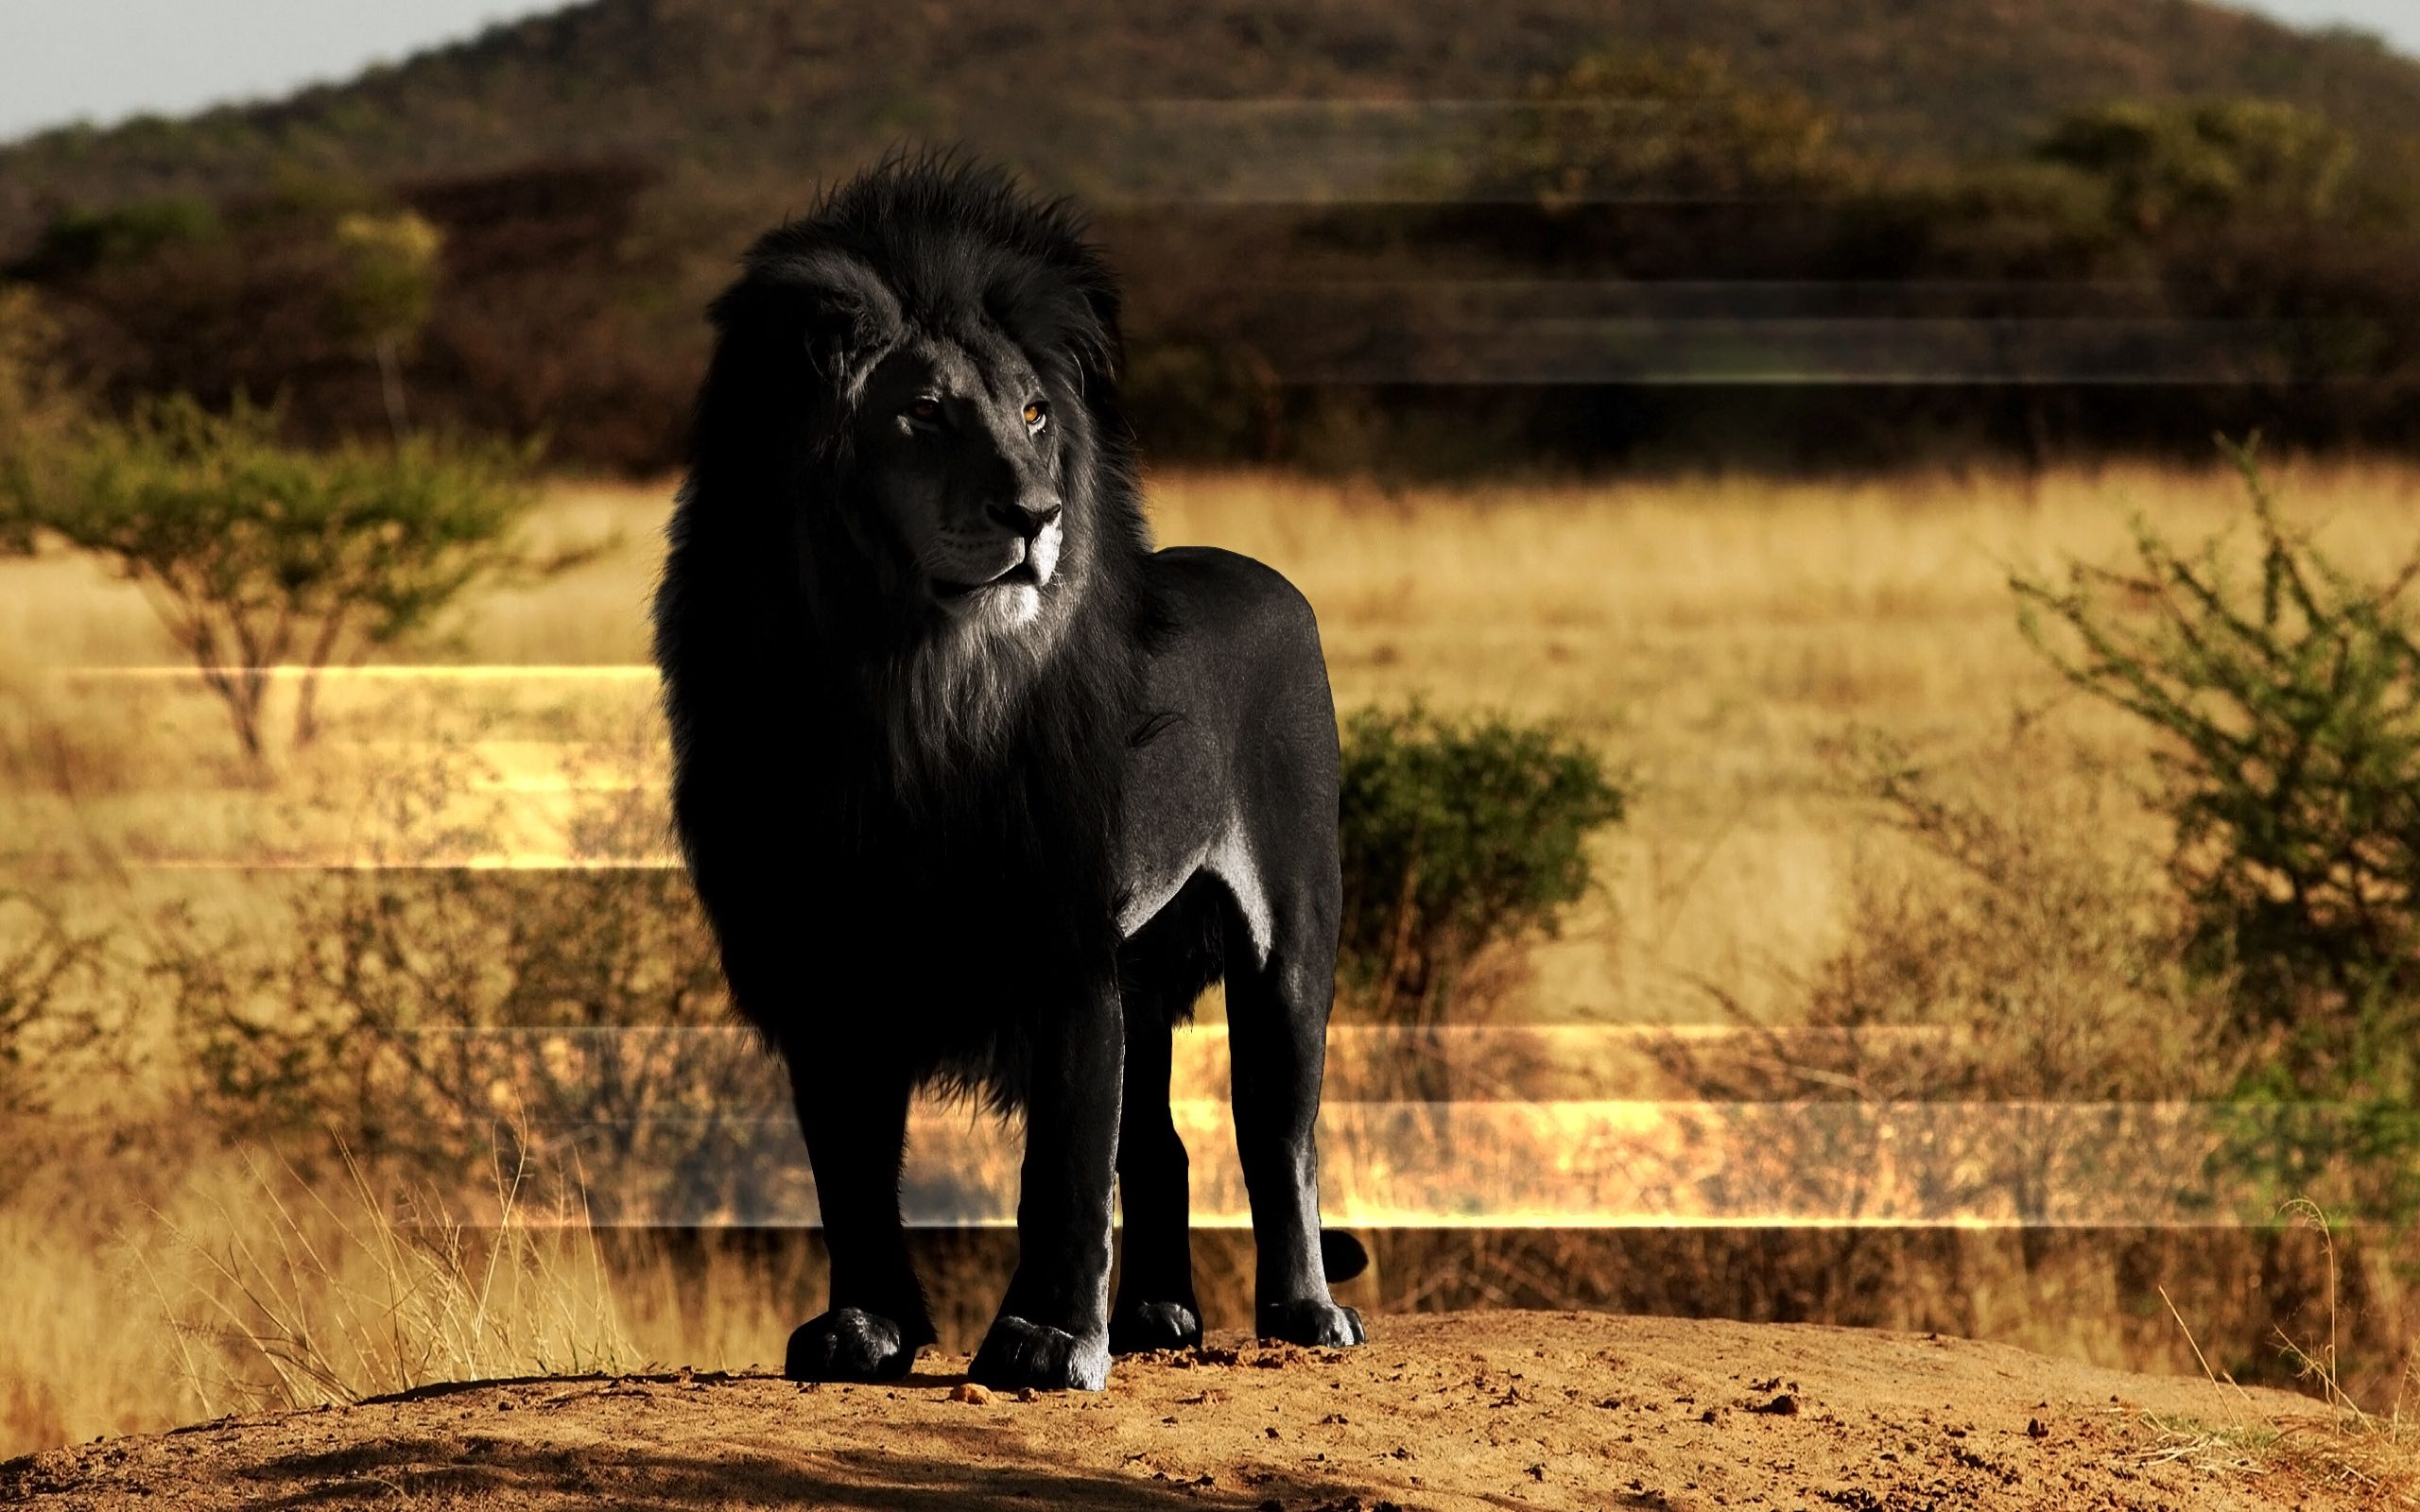 78296 download wallpaper Animals, Rock, Lion, Stone, Mane, Black Lion screensavers and pictures for free